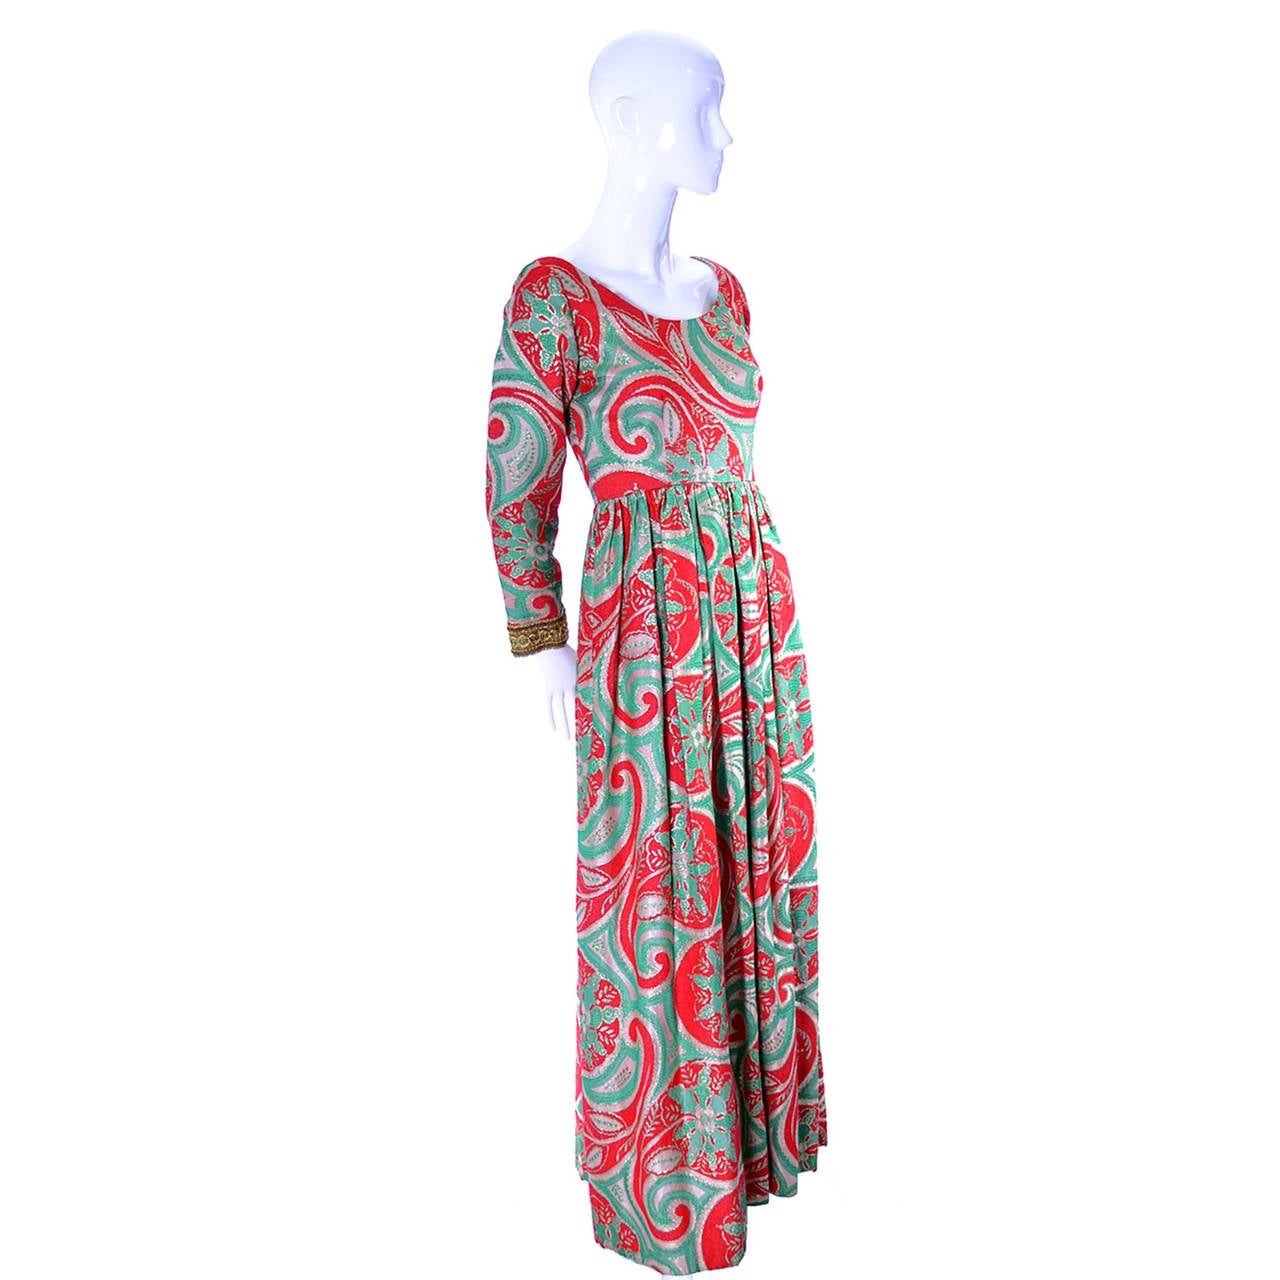 This is a rare vintage Oscar de la Renta boutique 1960s maxi dress. This gorgeous full length dress is fully lined and the fabric feels like a wool and has silver metallic threads woven in the paisley pattern in shades of gold, red, green and pale